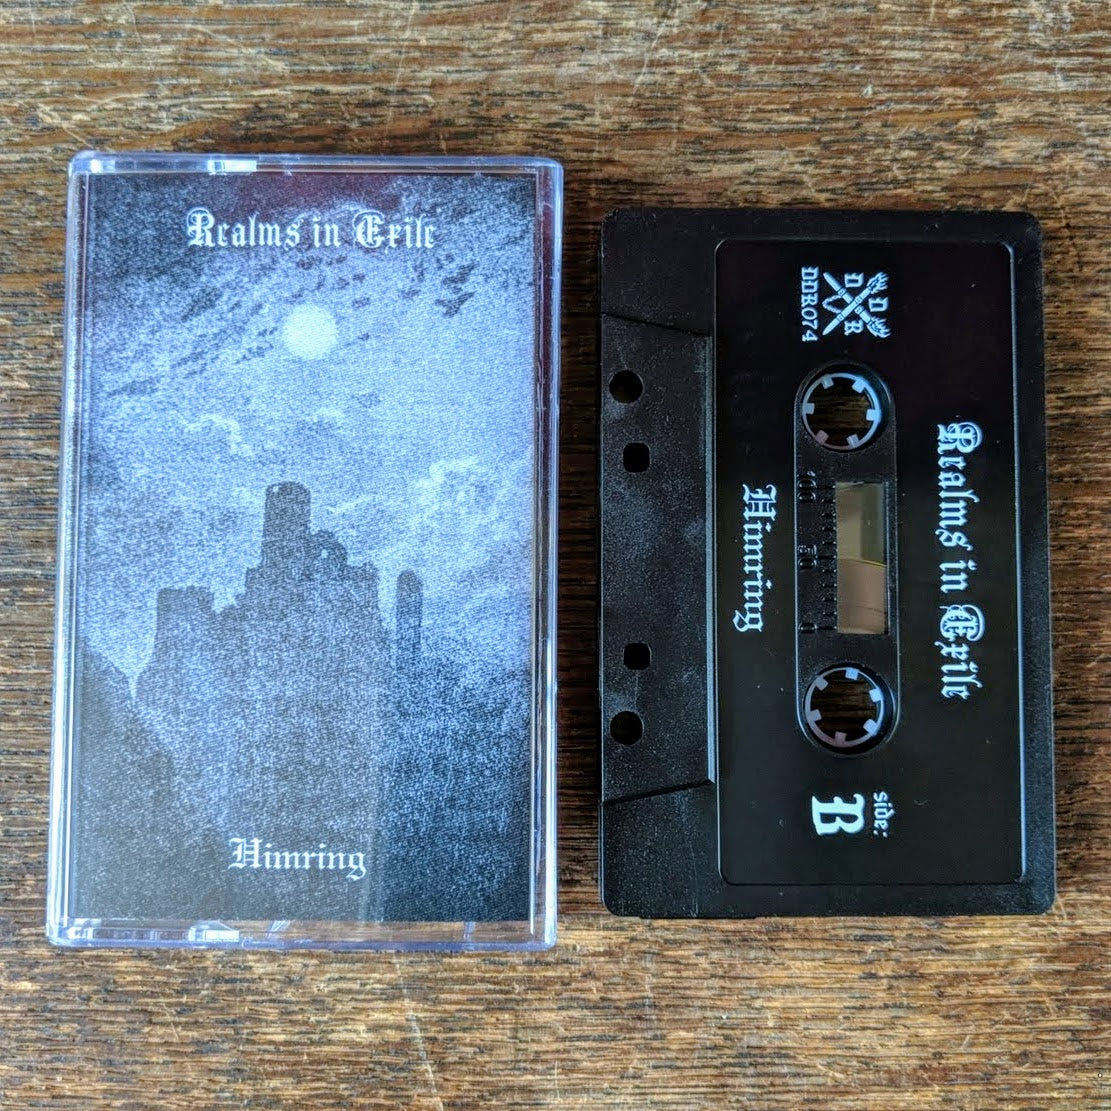 "REALMS IN EXILE ""Himring"" Cassette Tape"